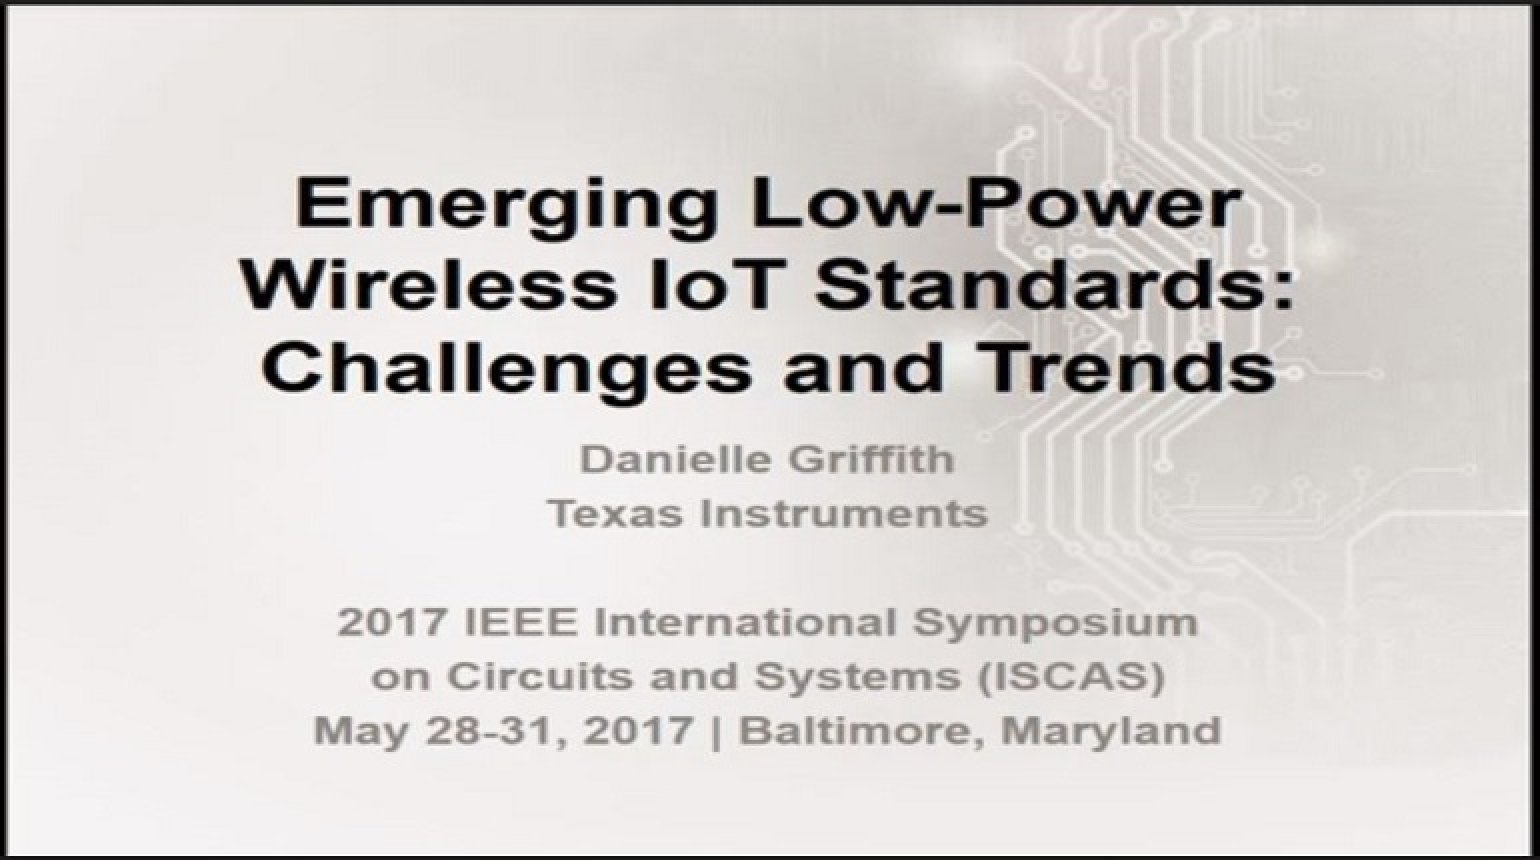 Emerging Low-Power Wireless IoT Standards: Challenges and Trends